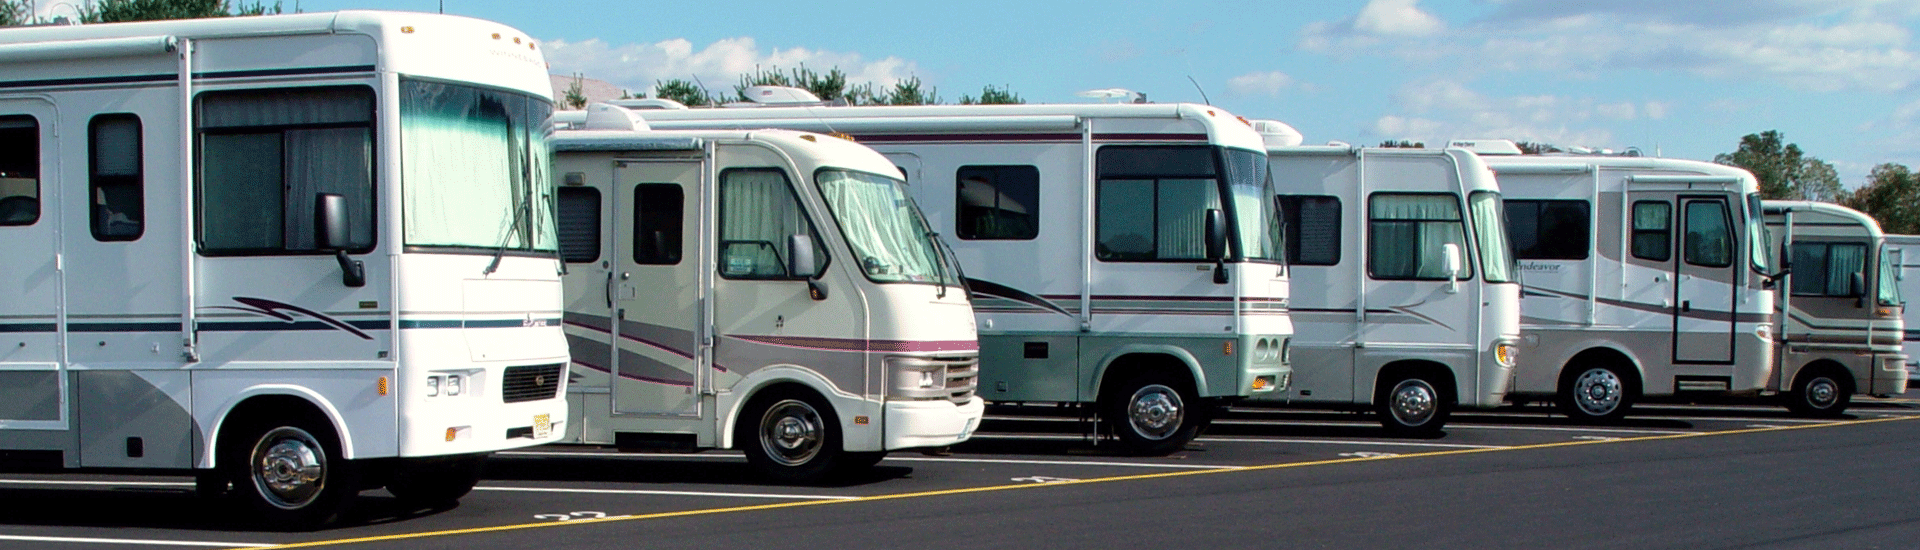 Recreational Vehicles on a Parking Lot